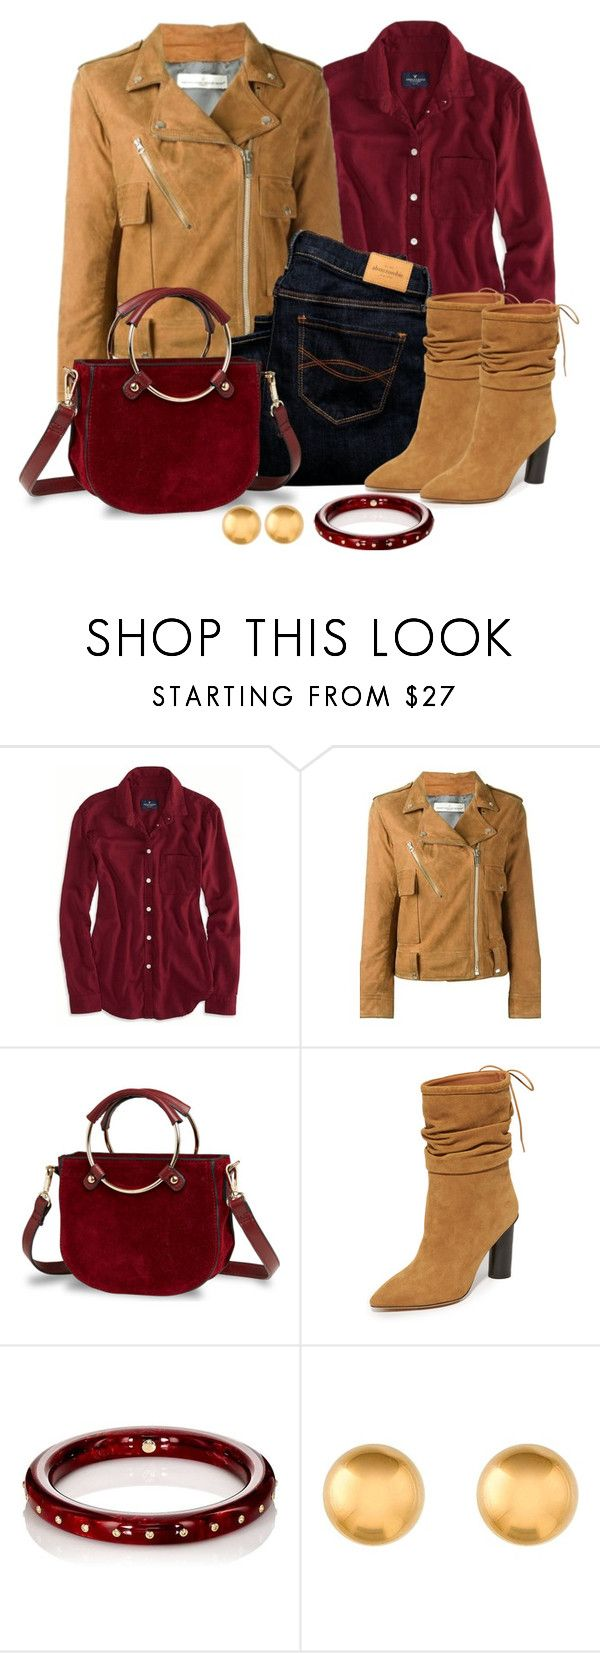 """""""Untitled #1544"""" by gallant81 ❤ liked on Polyvore featuring American Eagle Outfitters, Golden Goose, Abercrombie & Fitch, IRO and Mark Davis"""